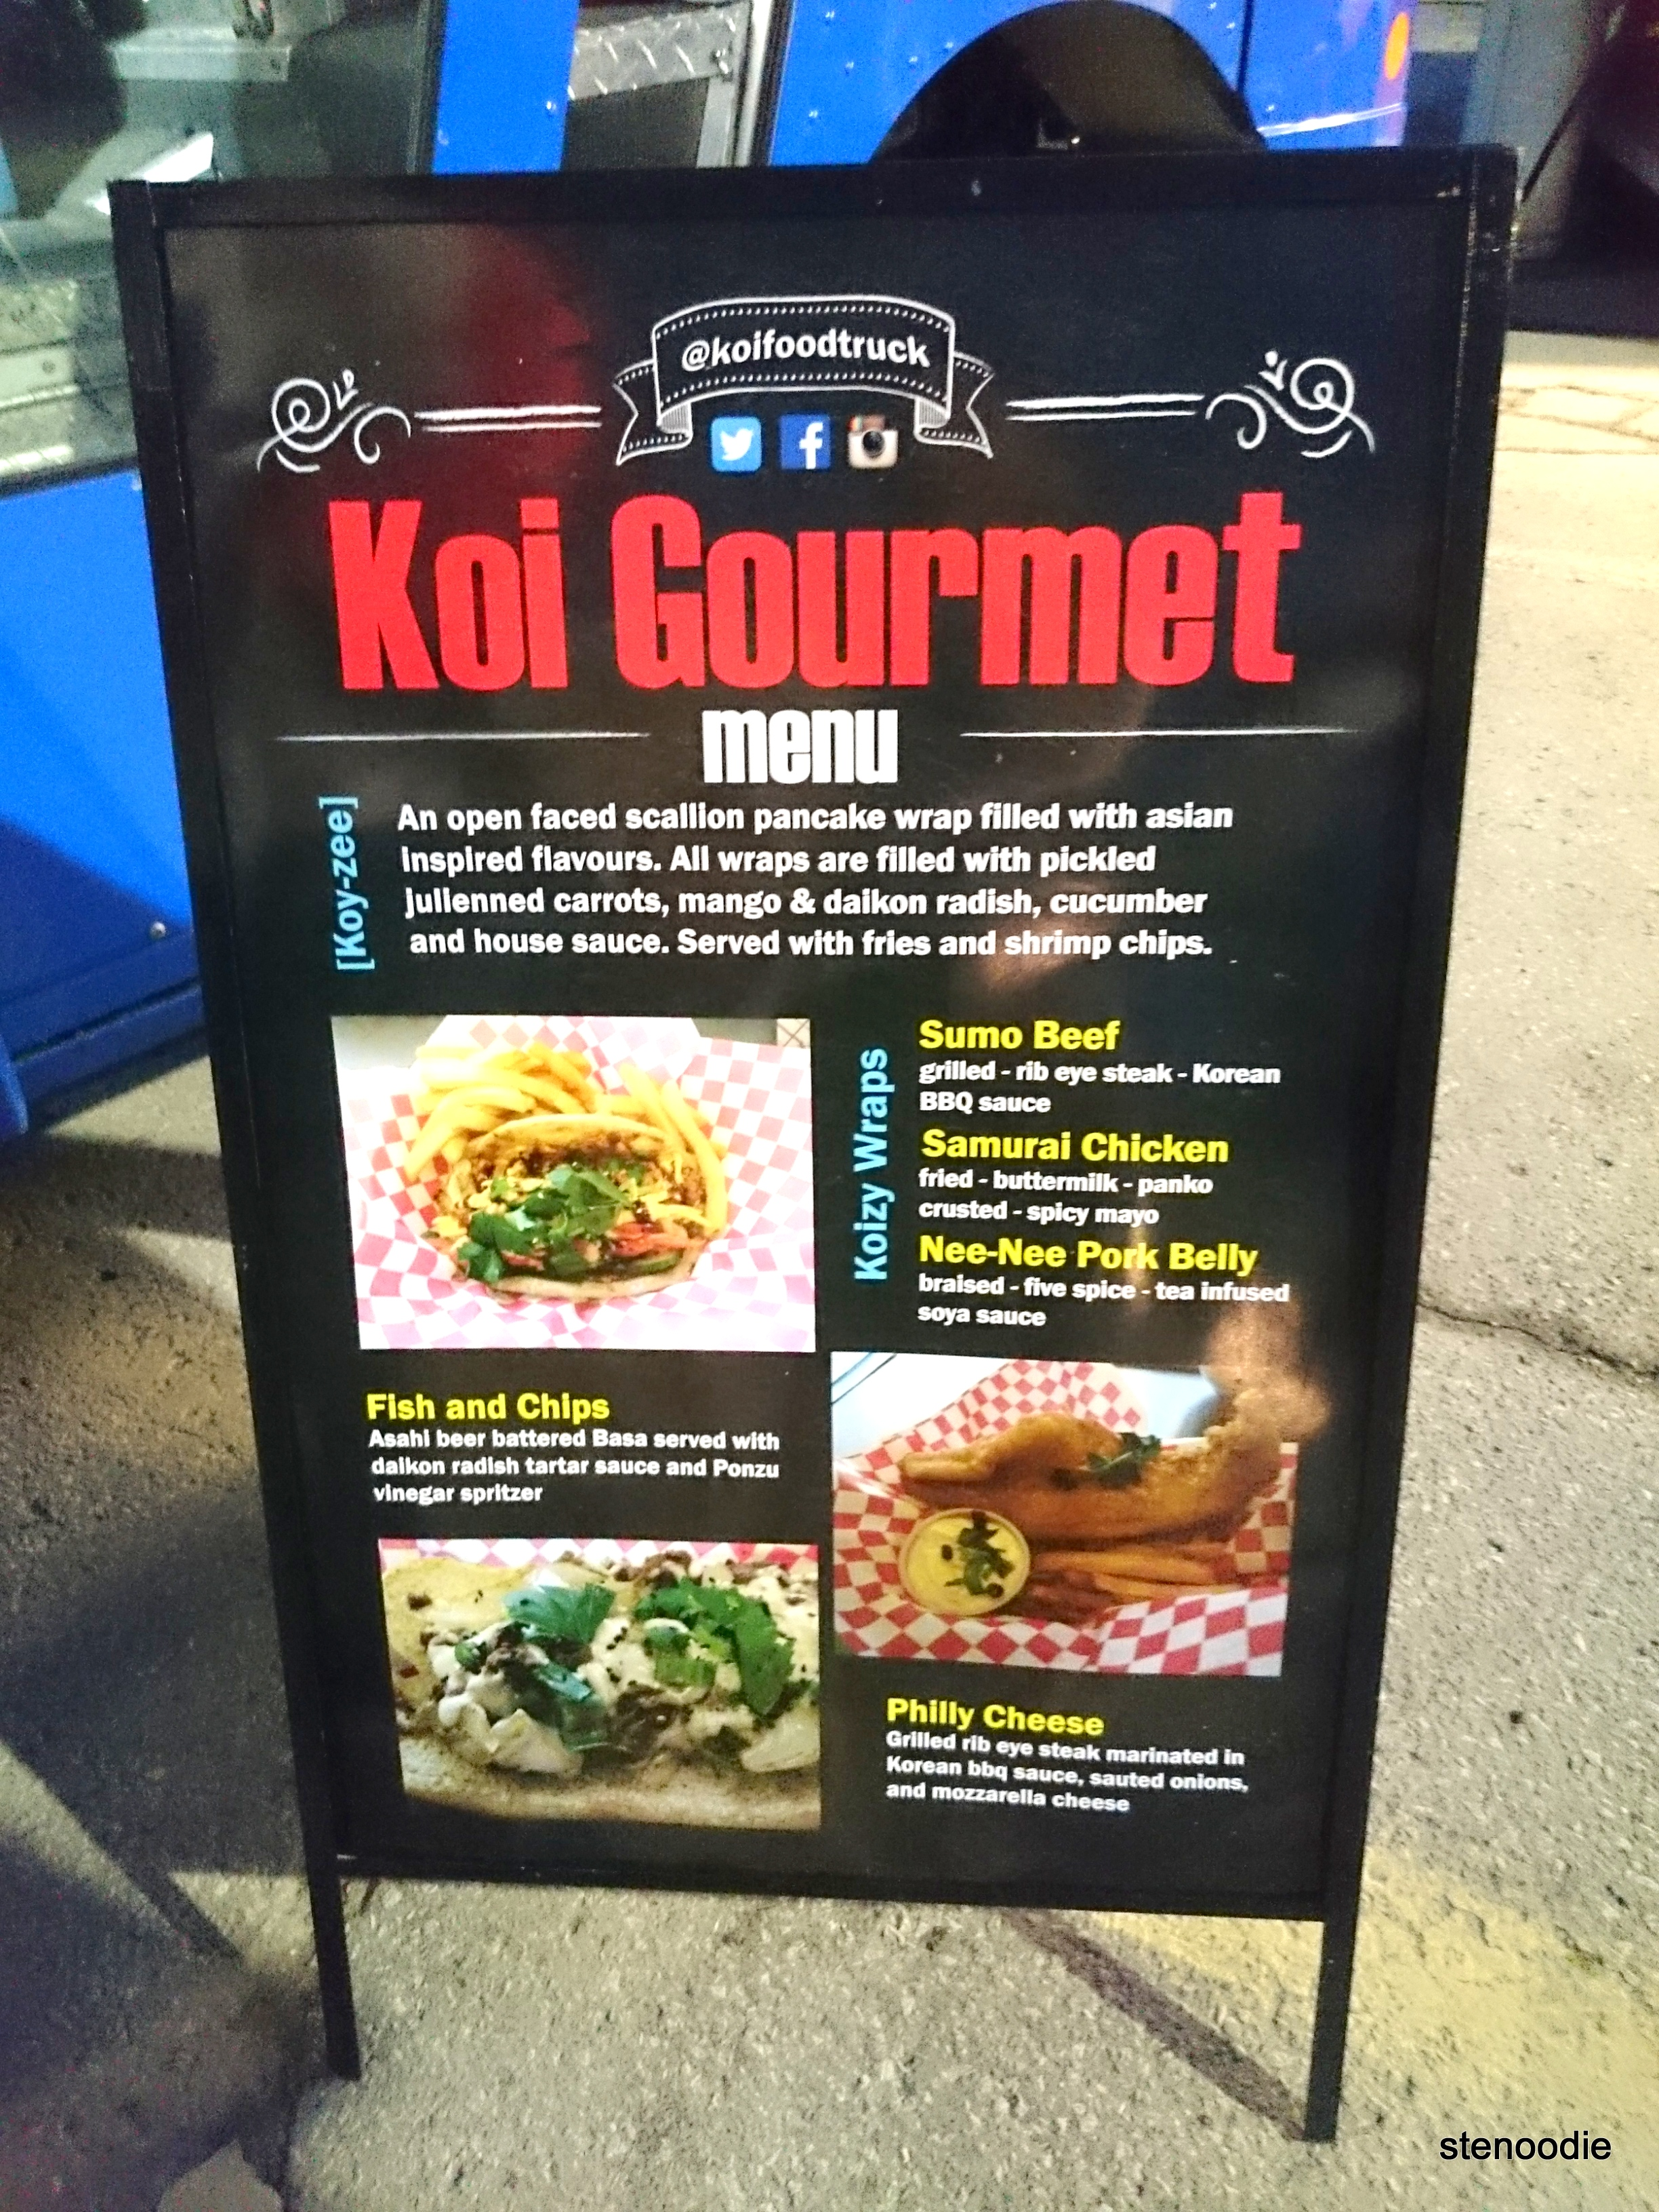 Koi Gourmet Food Inc. menu